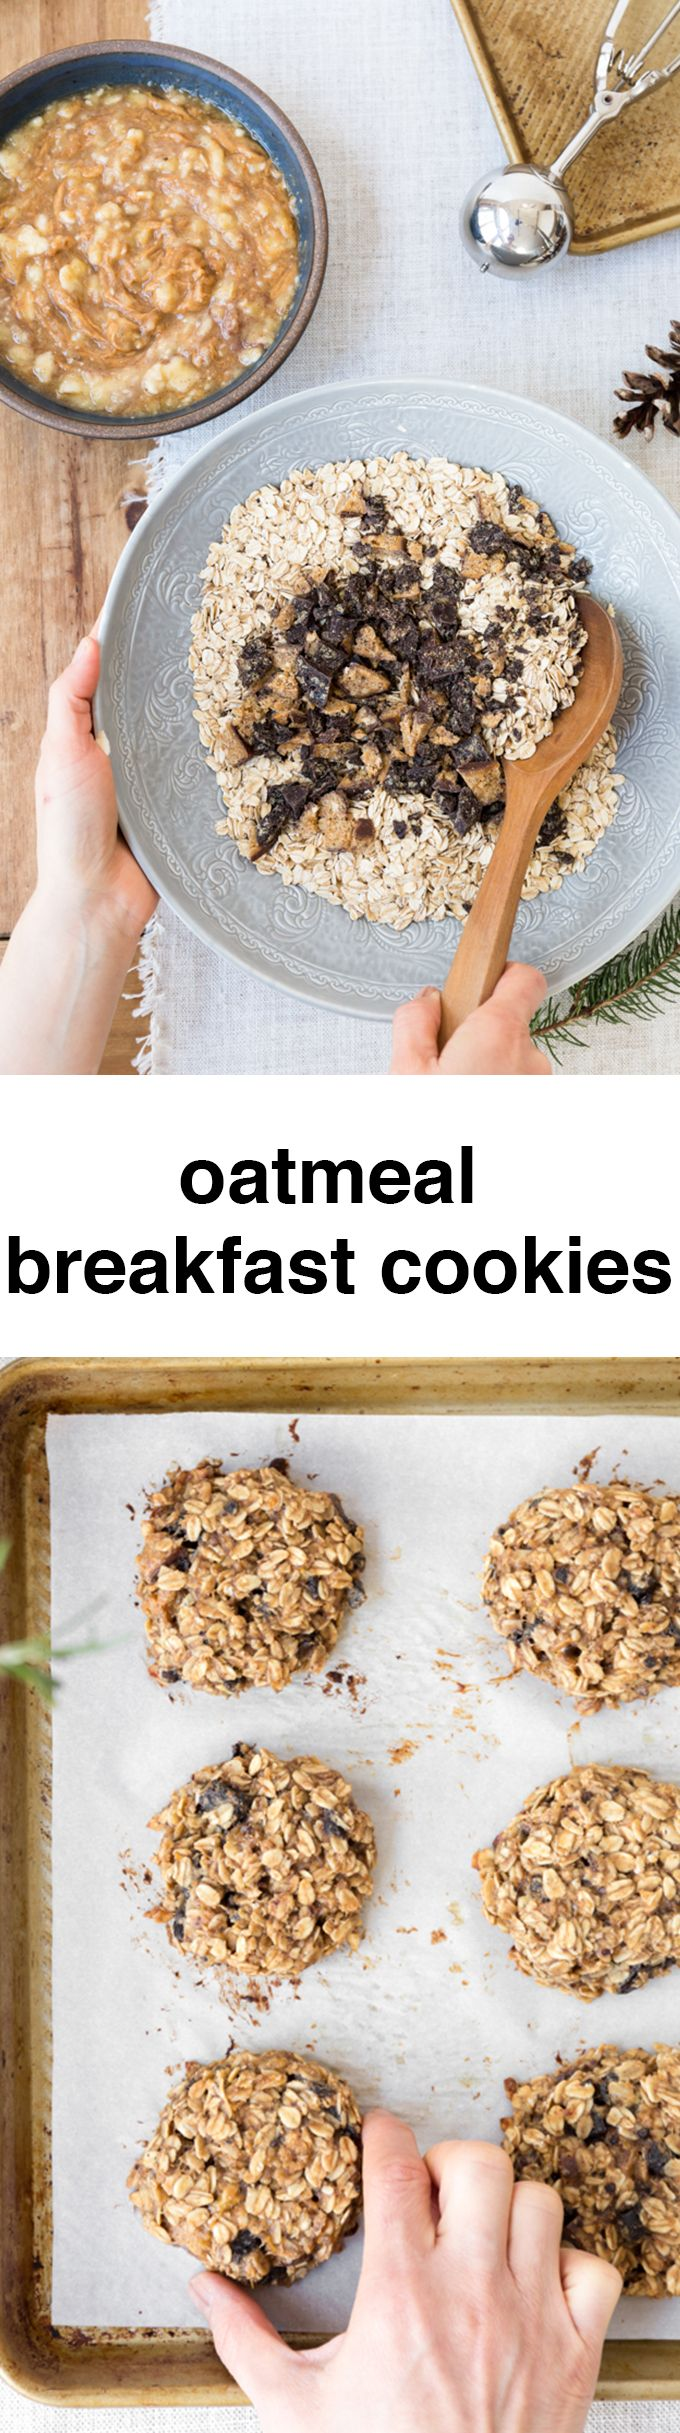 Banana Oatmeal Breakfast Cookies are nutritious, tasty and super easy to make. They make perfect grab-and-go breakfast for busy mornings. #sponsored